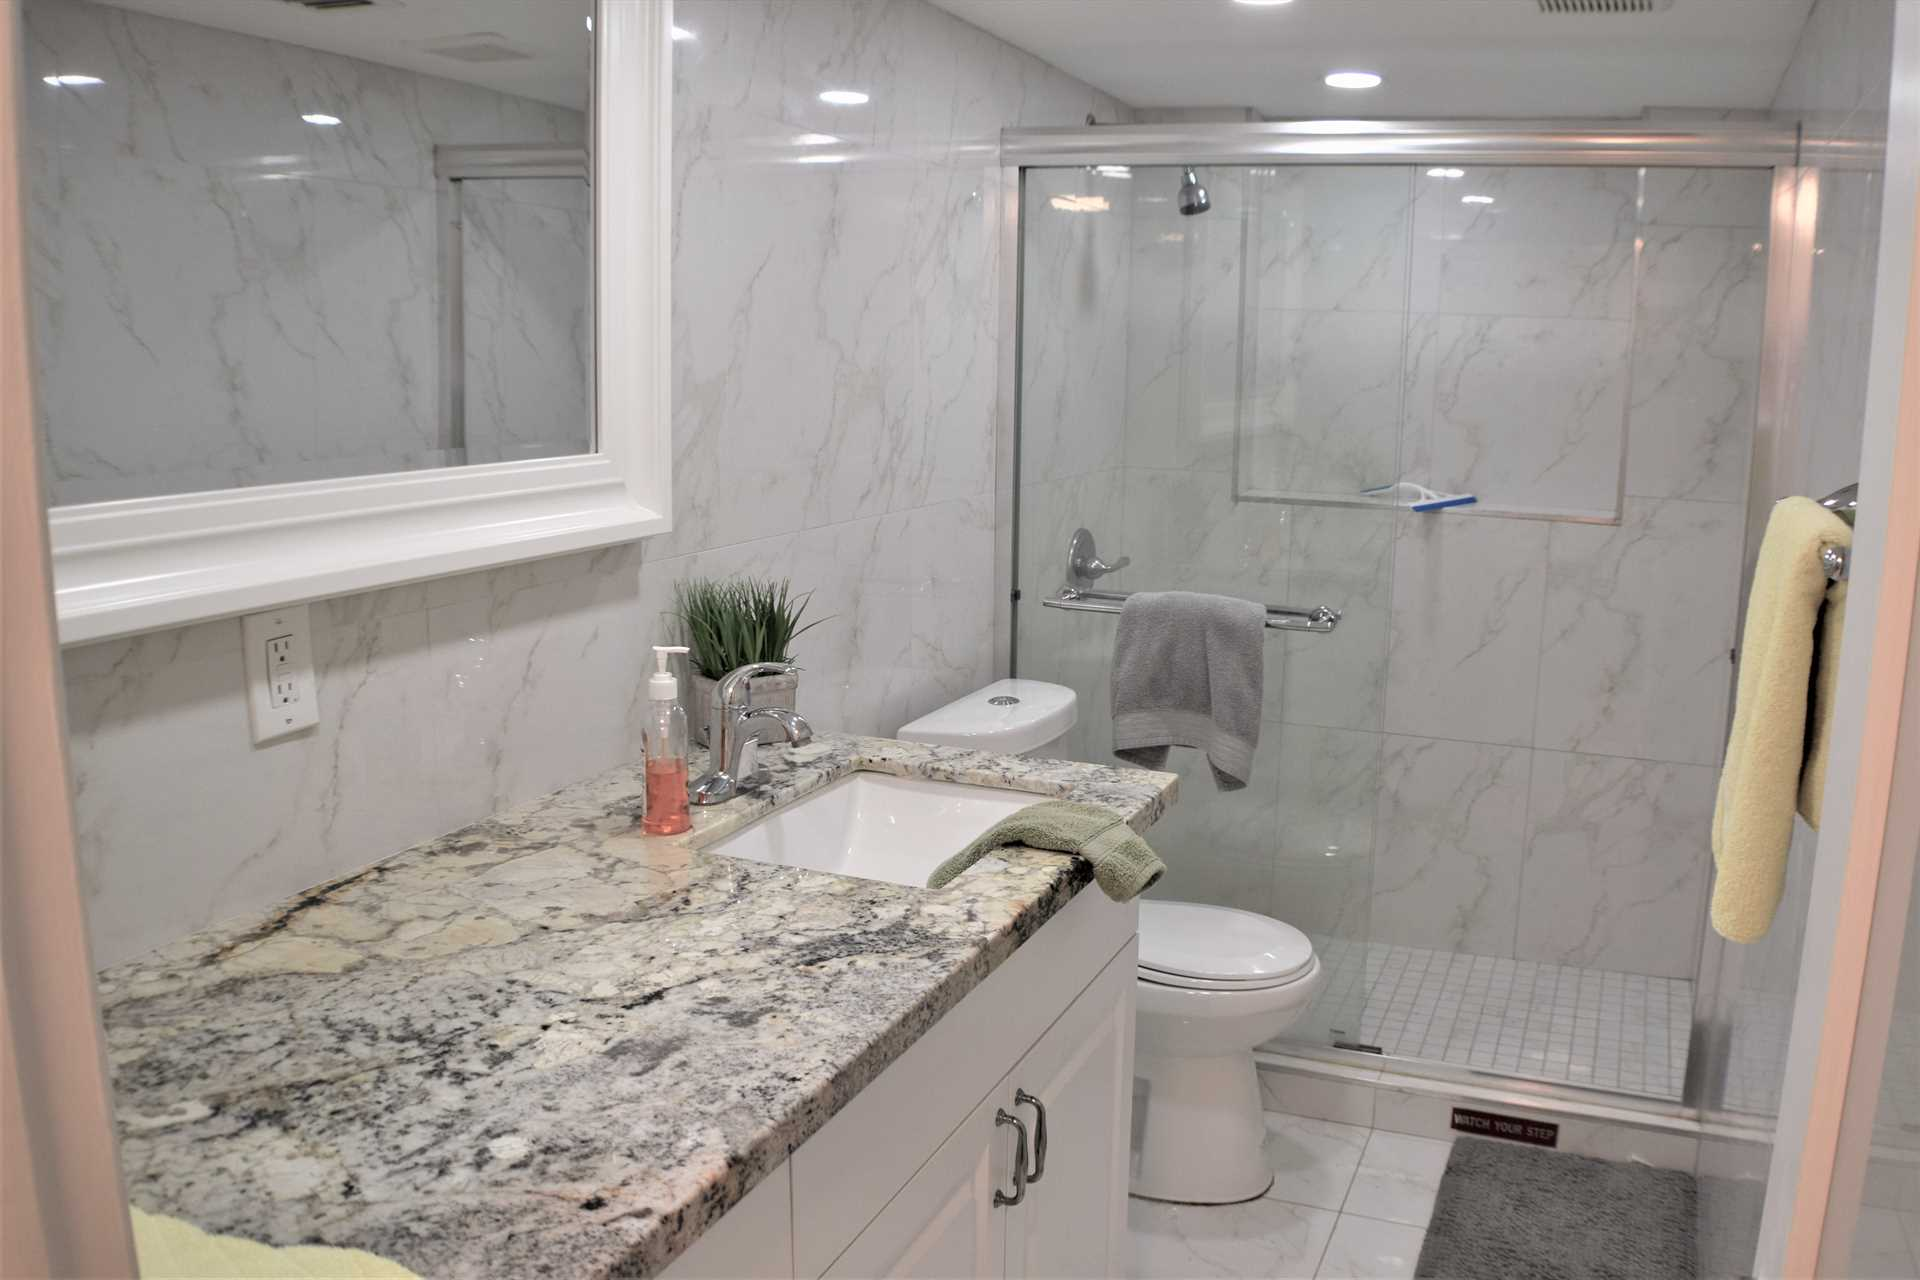 Main bath has marble countertops and walk in shower.